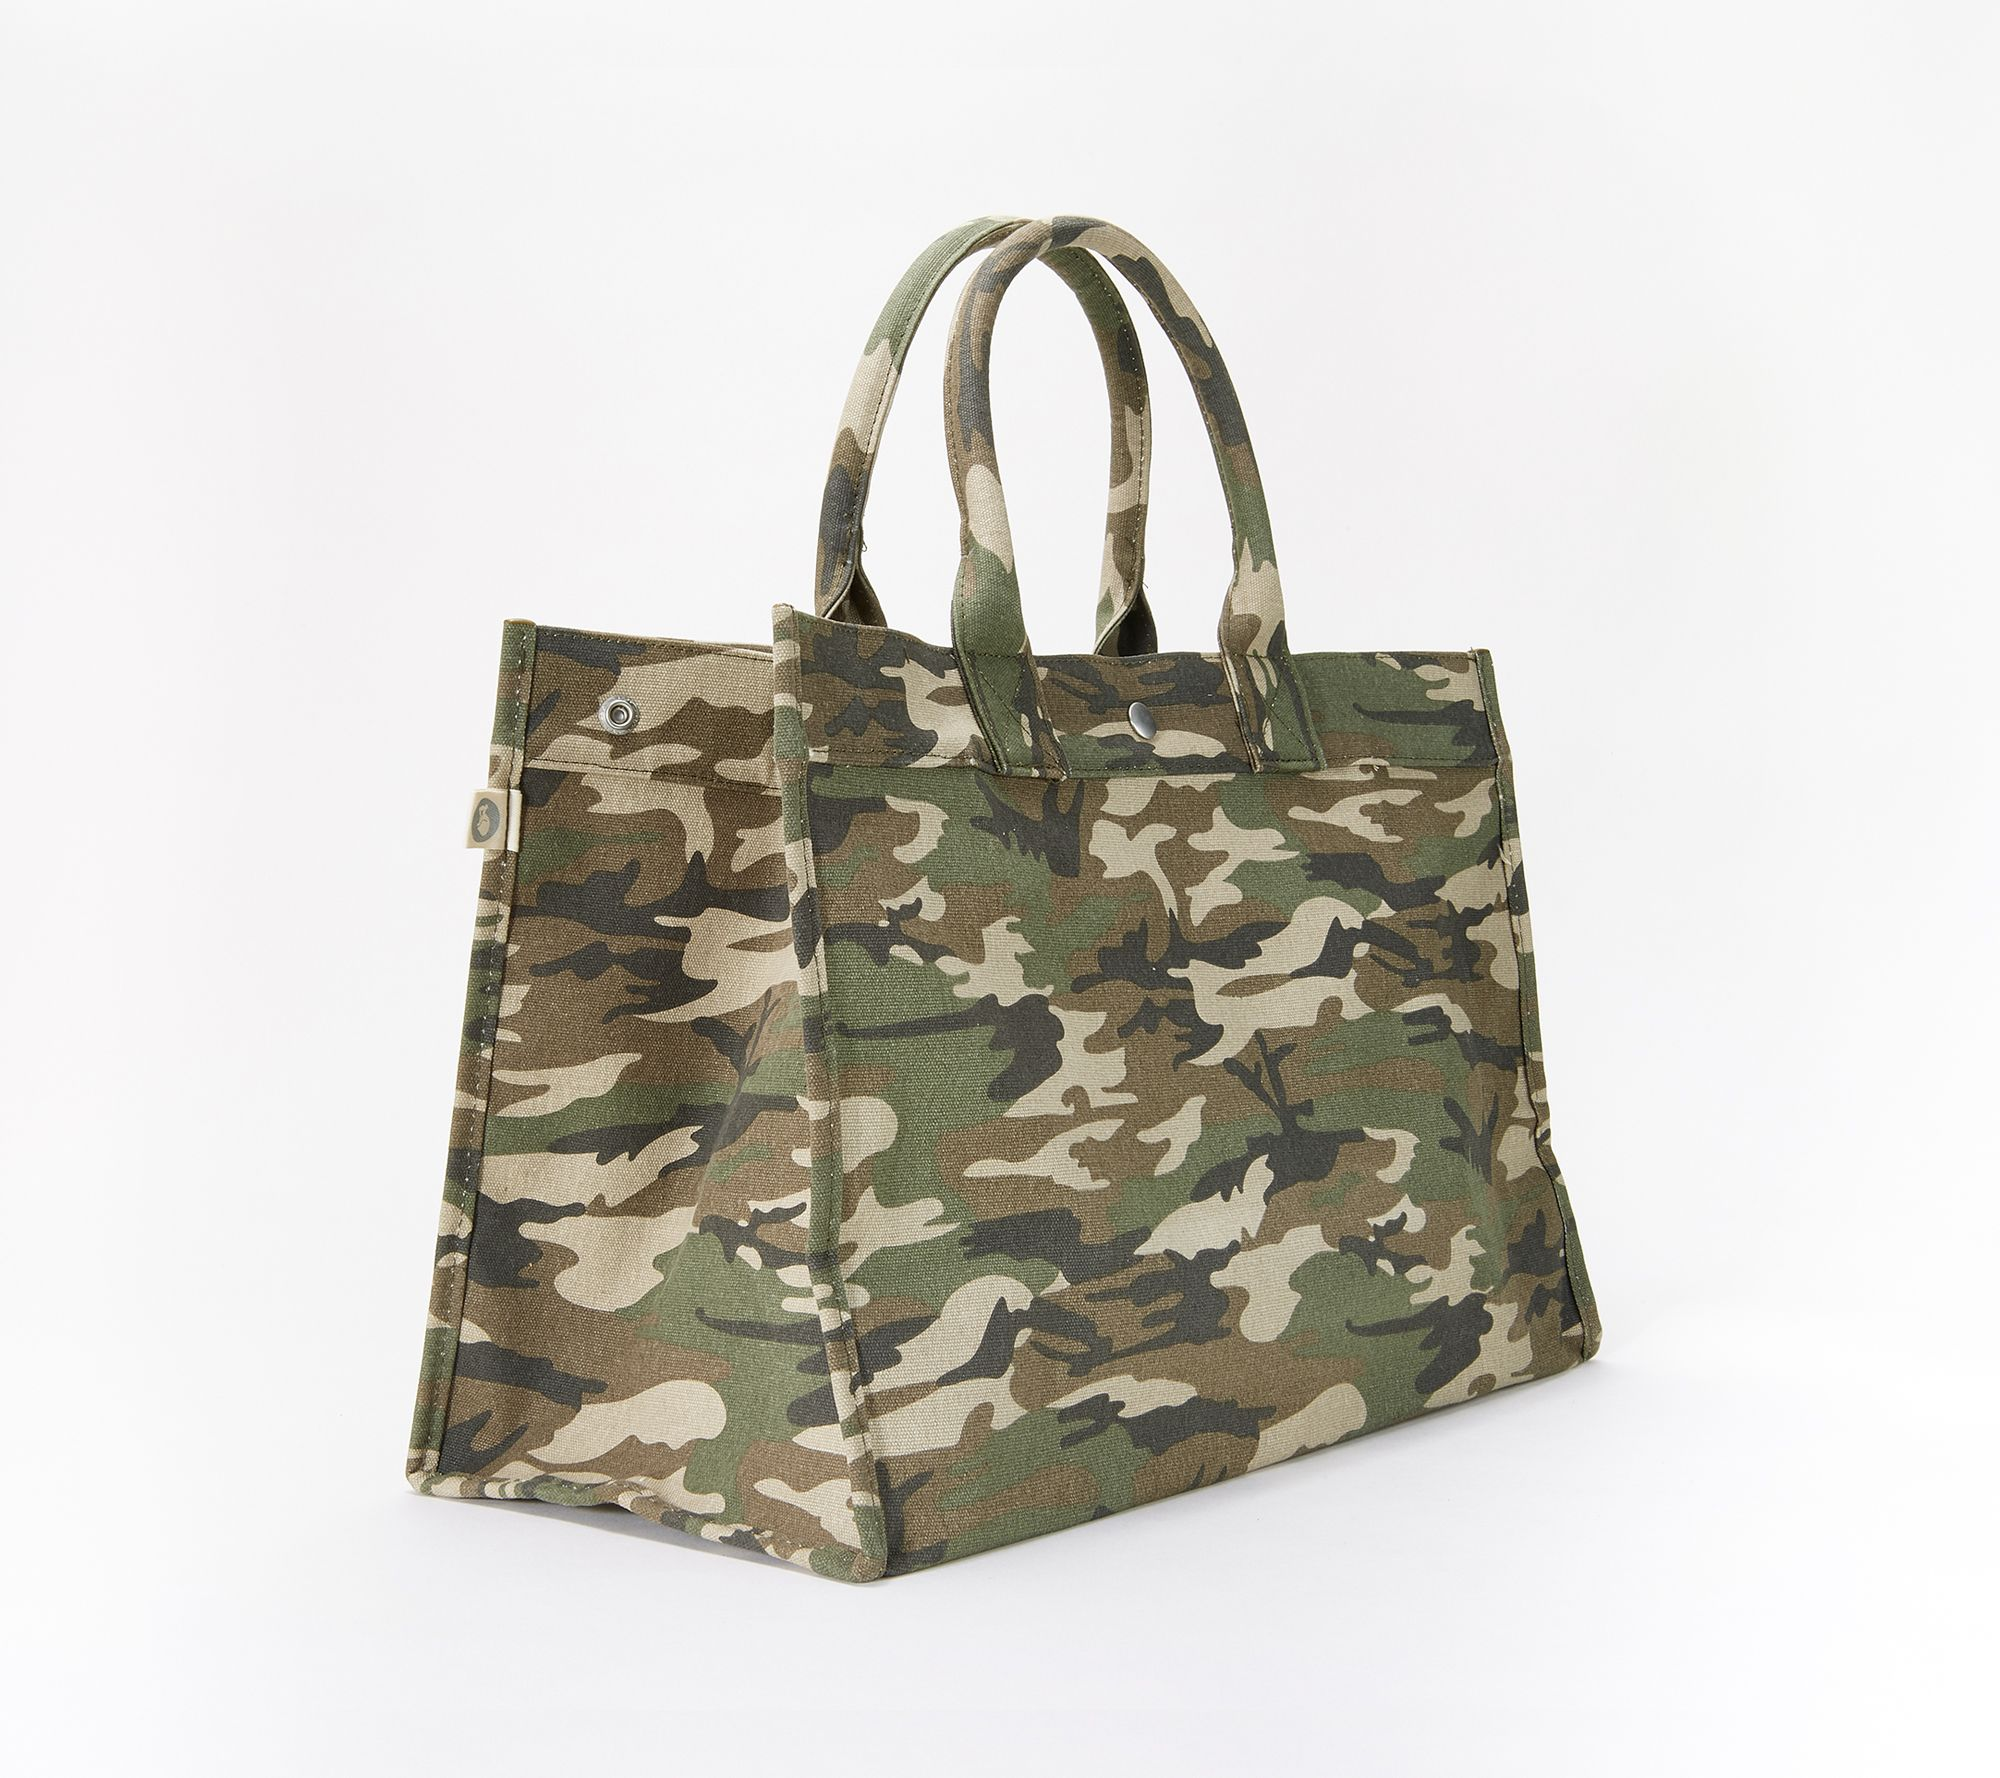 da81c60917f7 Quilted Koala East West Canvas Tote with Pom-Pom Accessory - Page 1 —  QVC.com